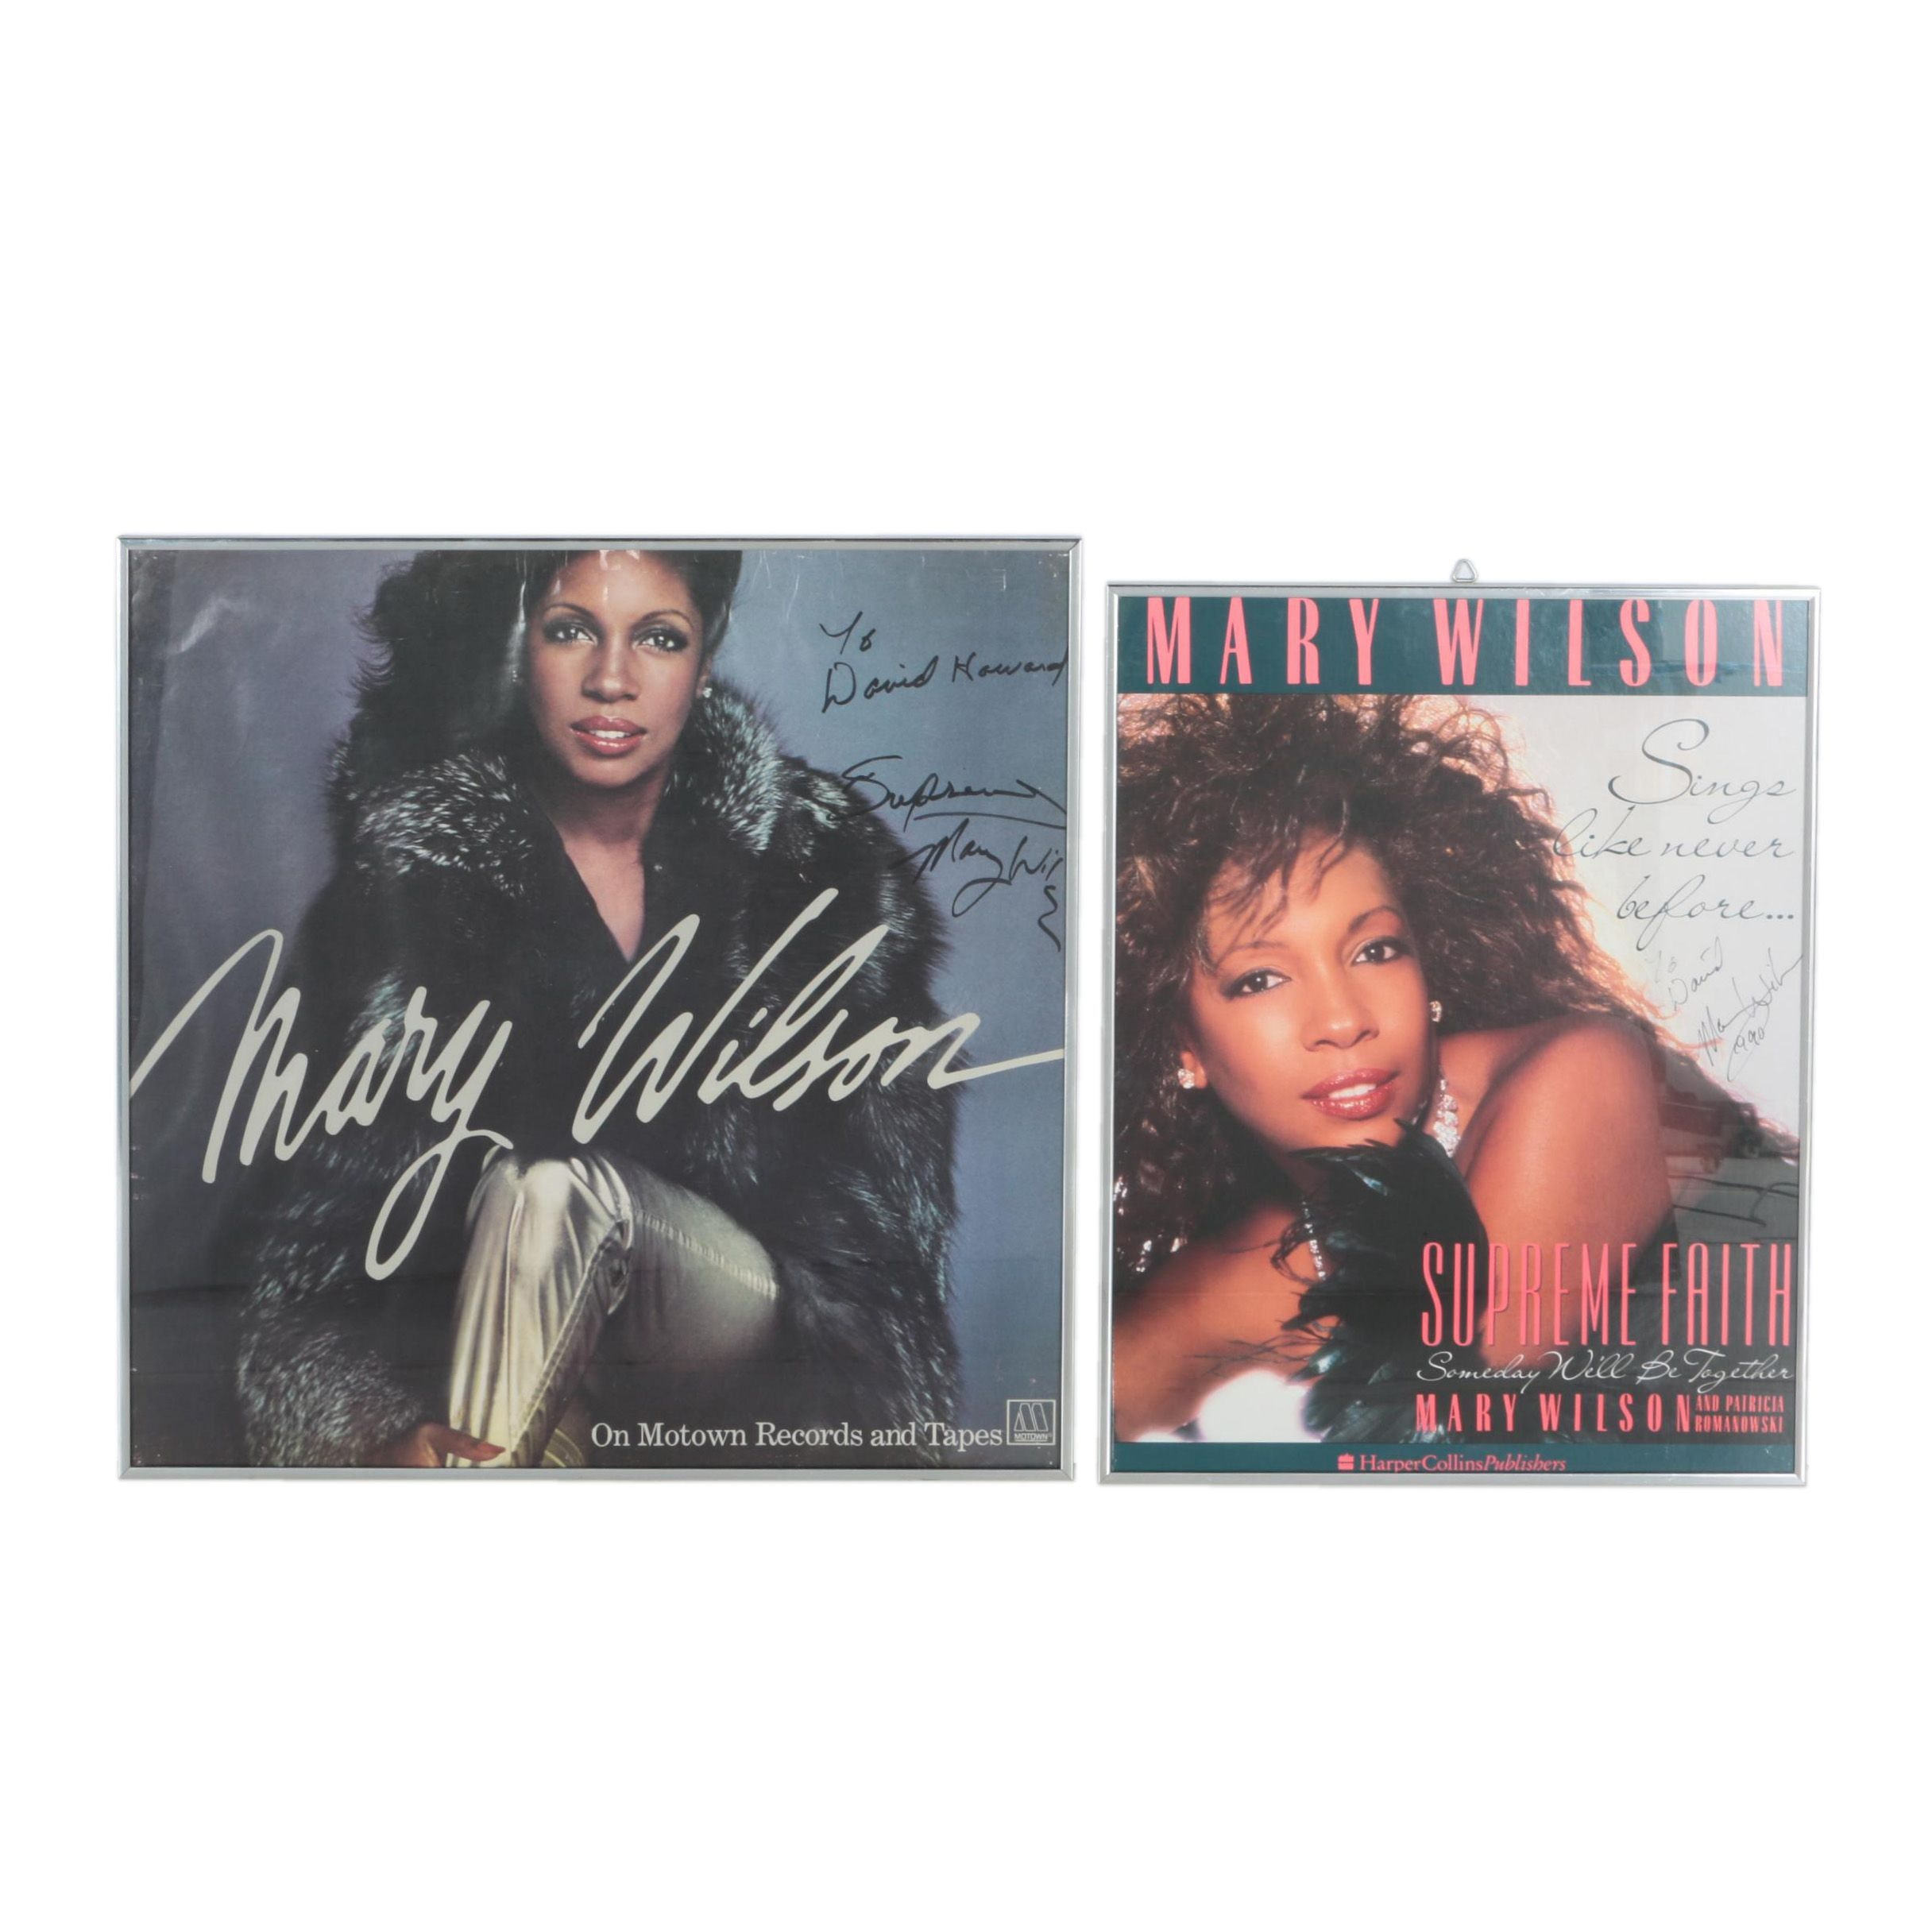 Mary Wilson Autographed Posters